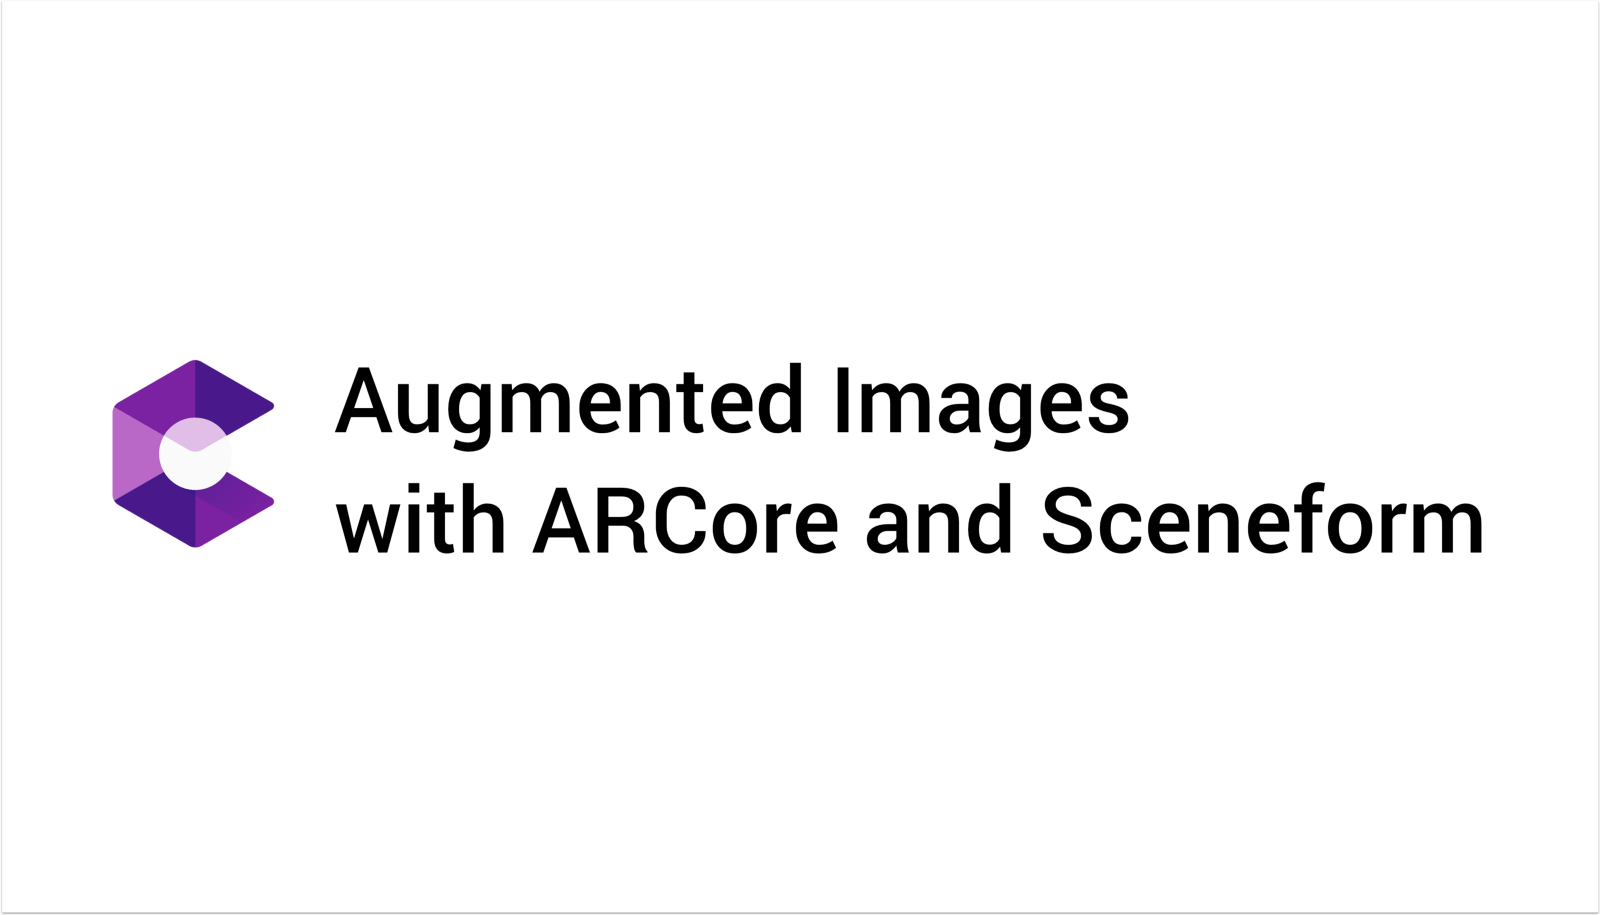 Augmented Images with ARCore and Sceneform